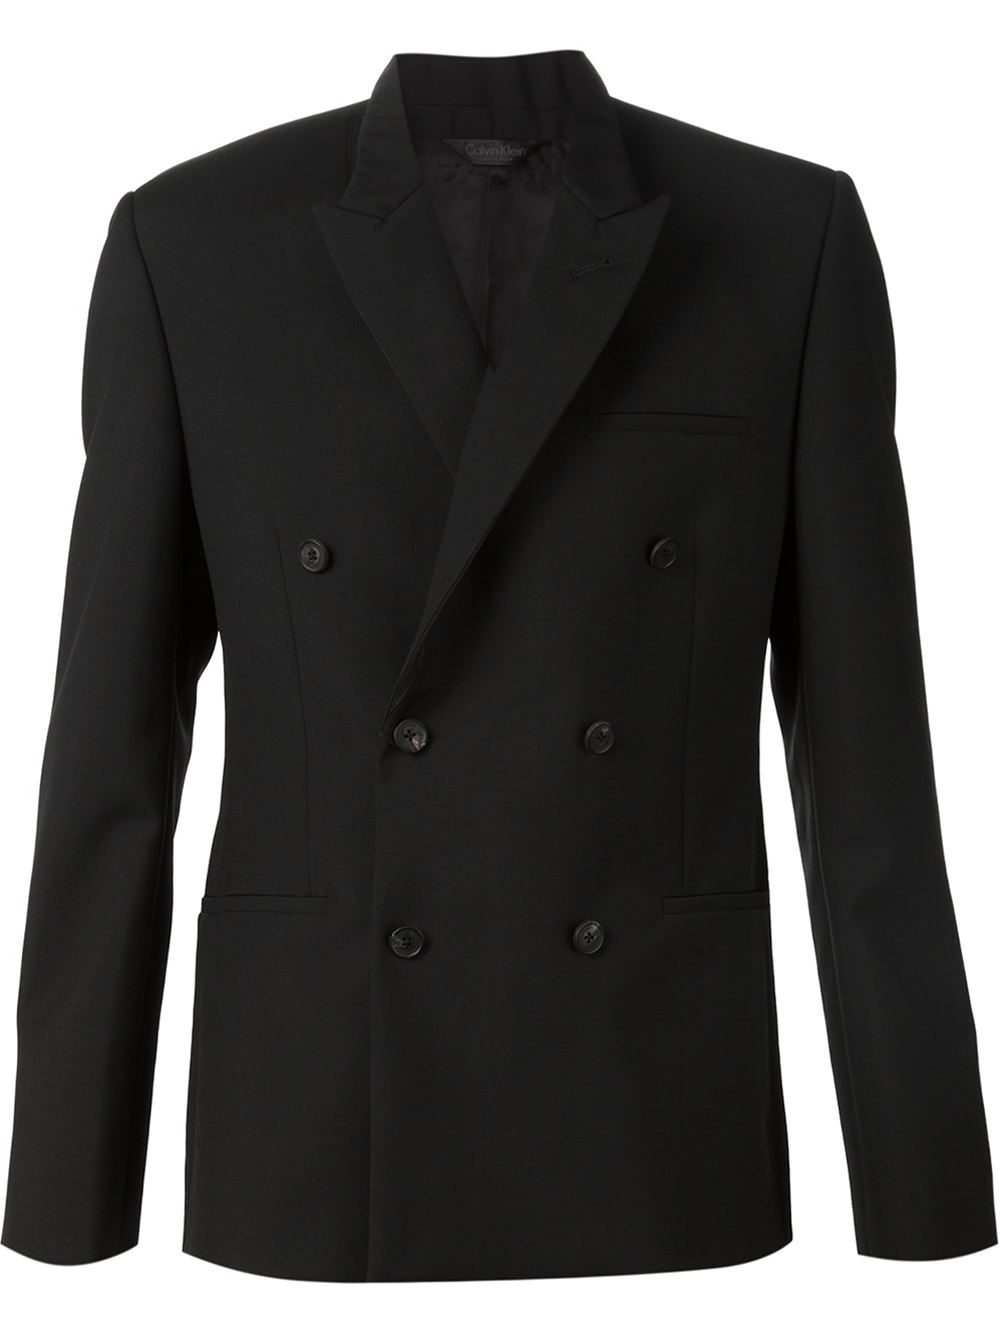 A men's black double-breasted blazer matches nearly any ensemble and comes with silver or gold buttons to add a bit of contrast. Look your best when you dress for success in a men's double-breasted blazer, available from the vast inventory on eBay.